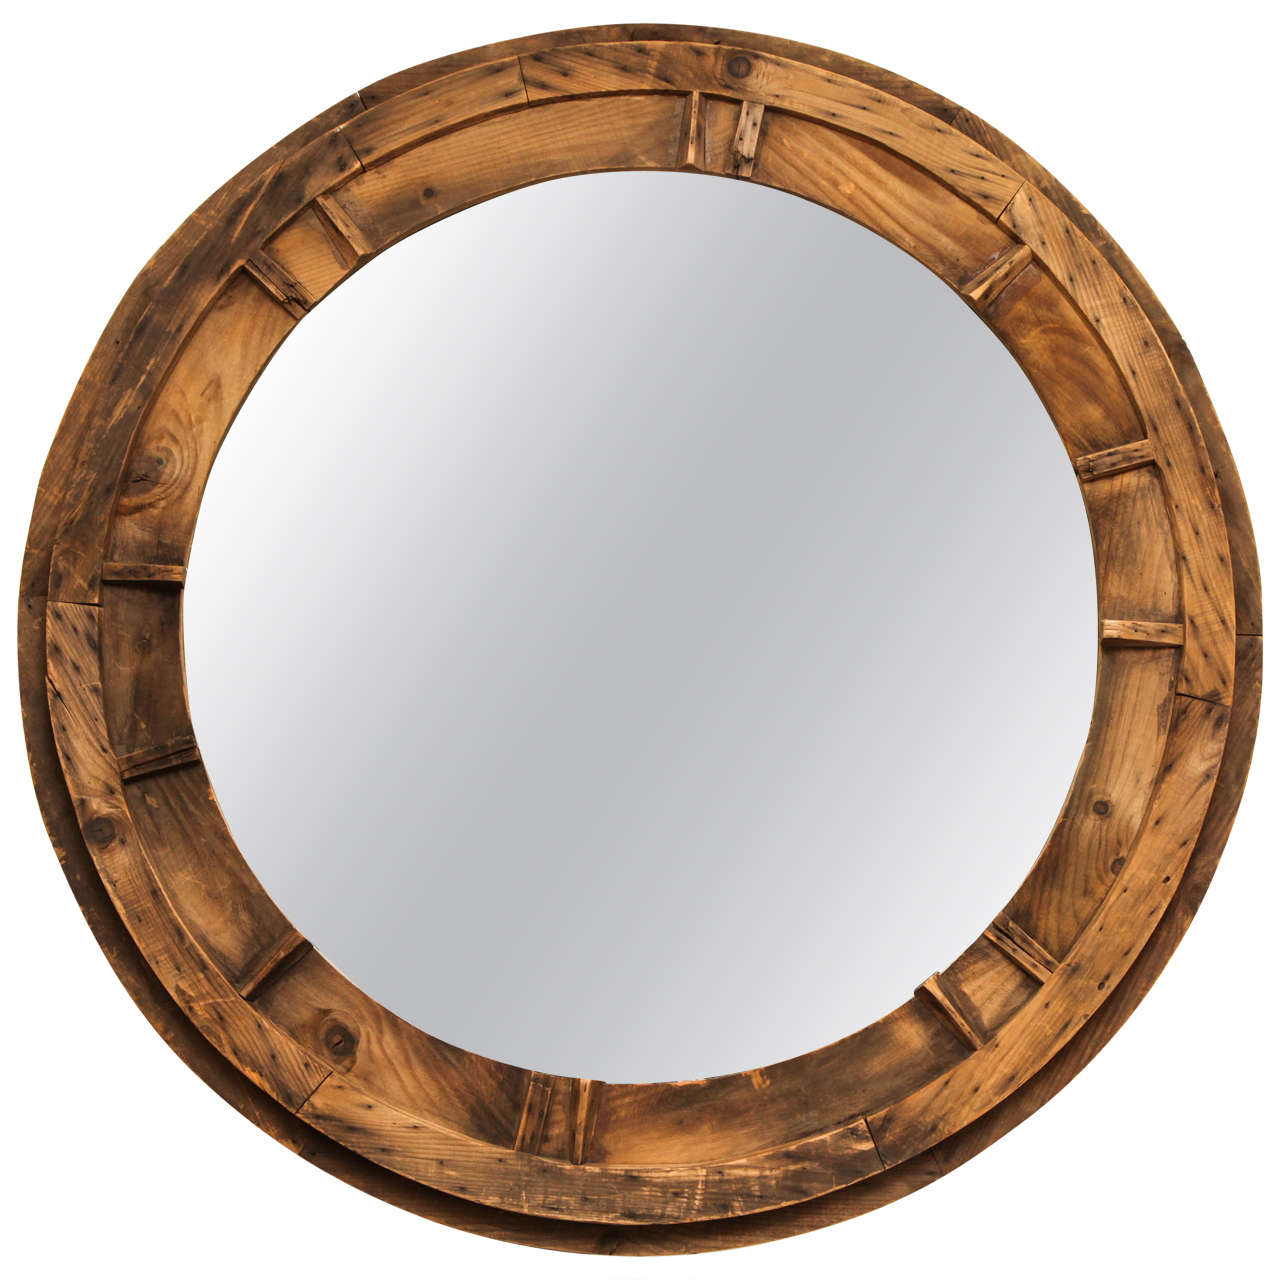 Large round sandmold mirror at 1stdibs for Mirror large